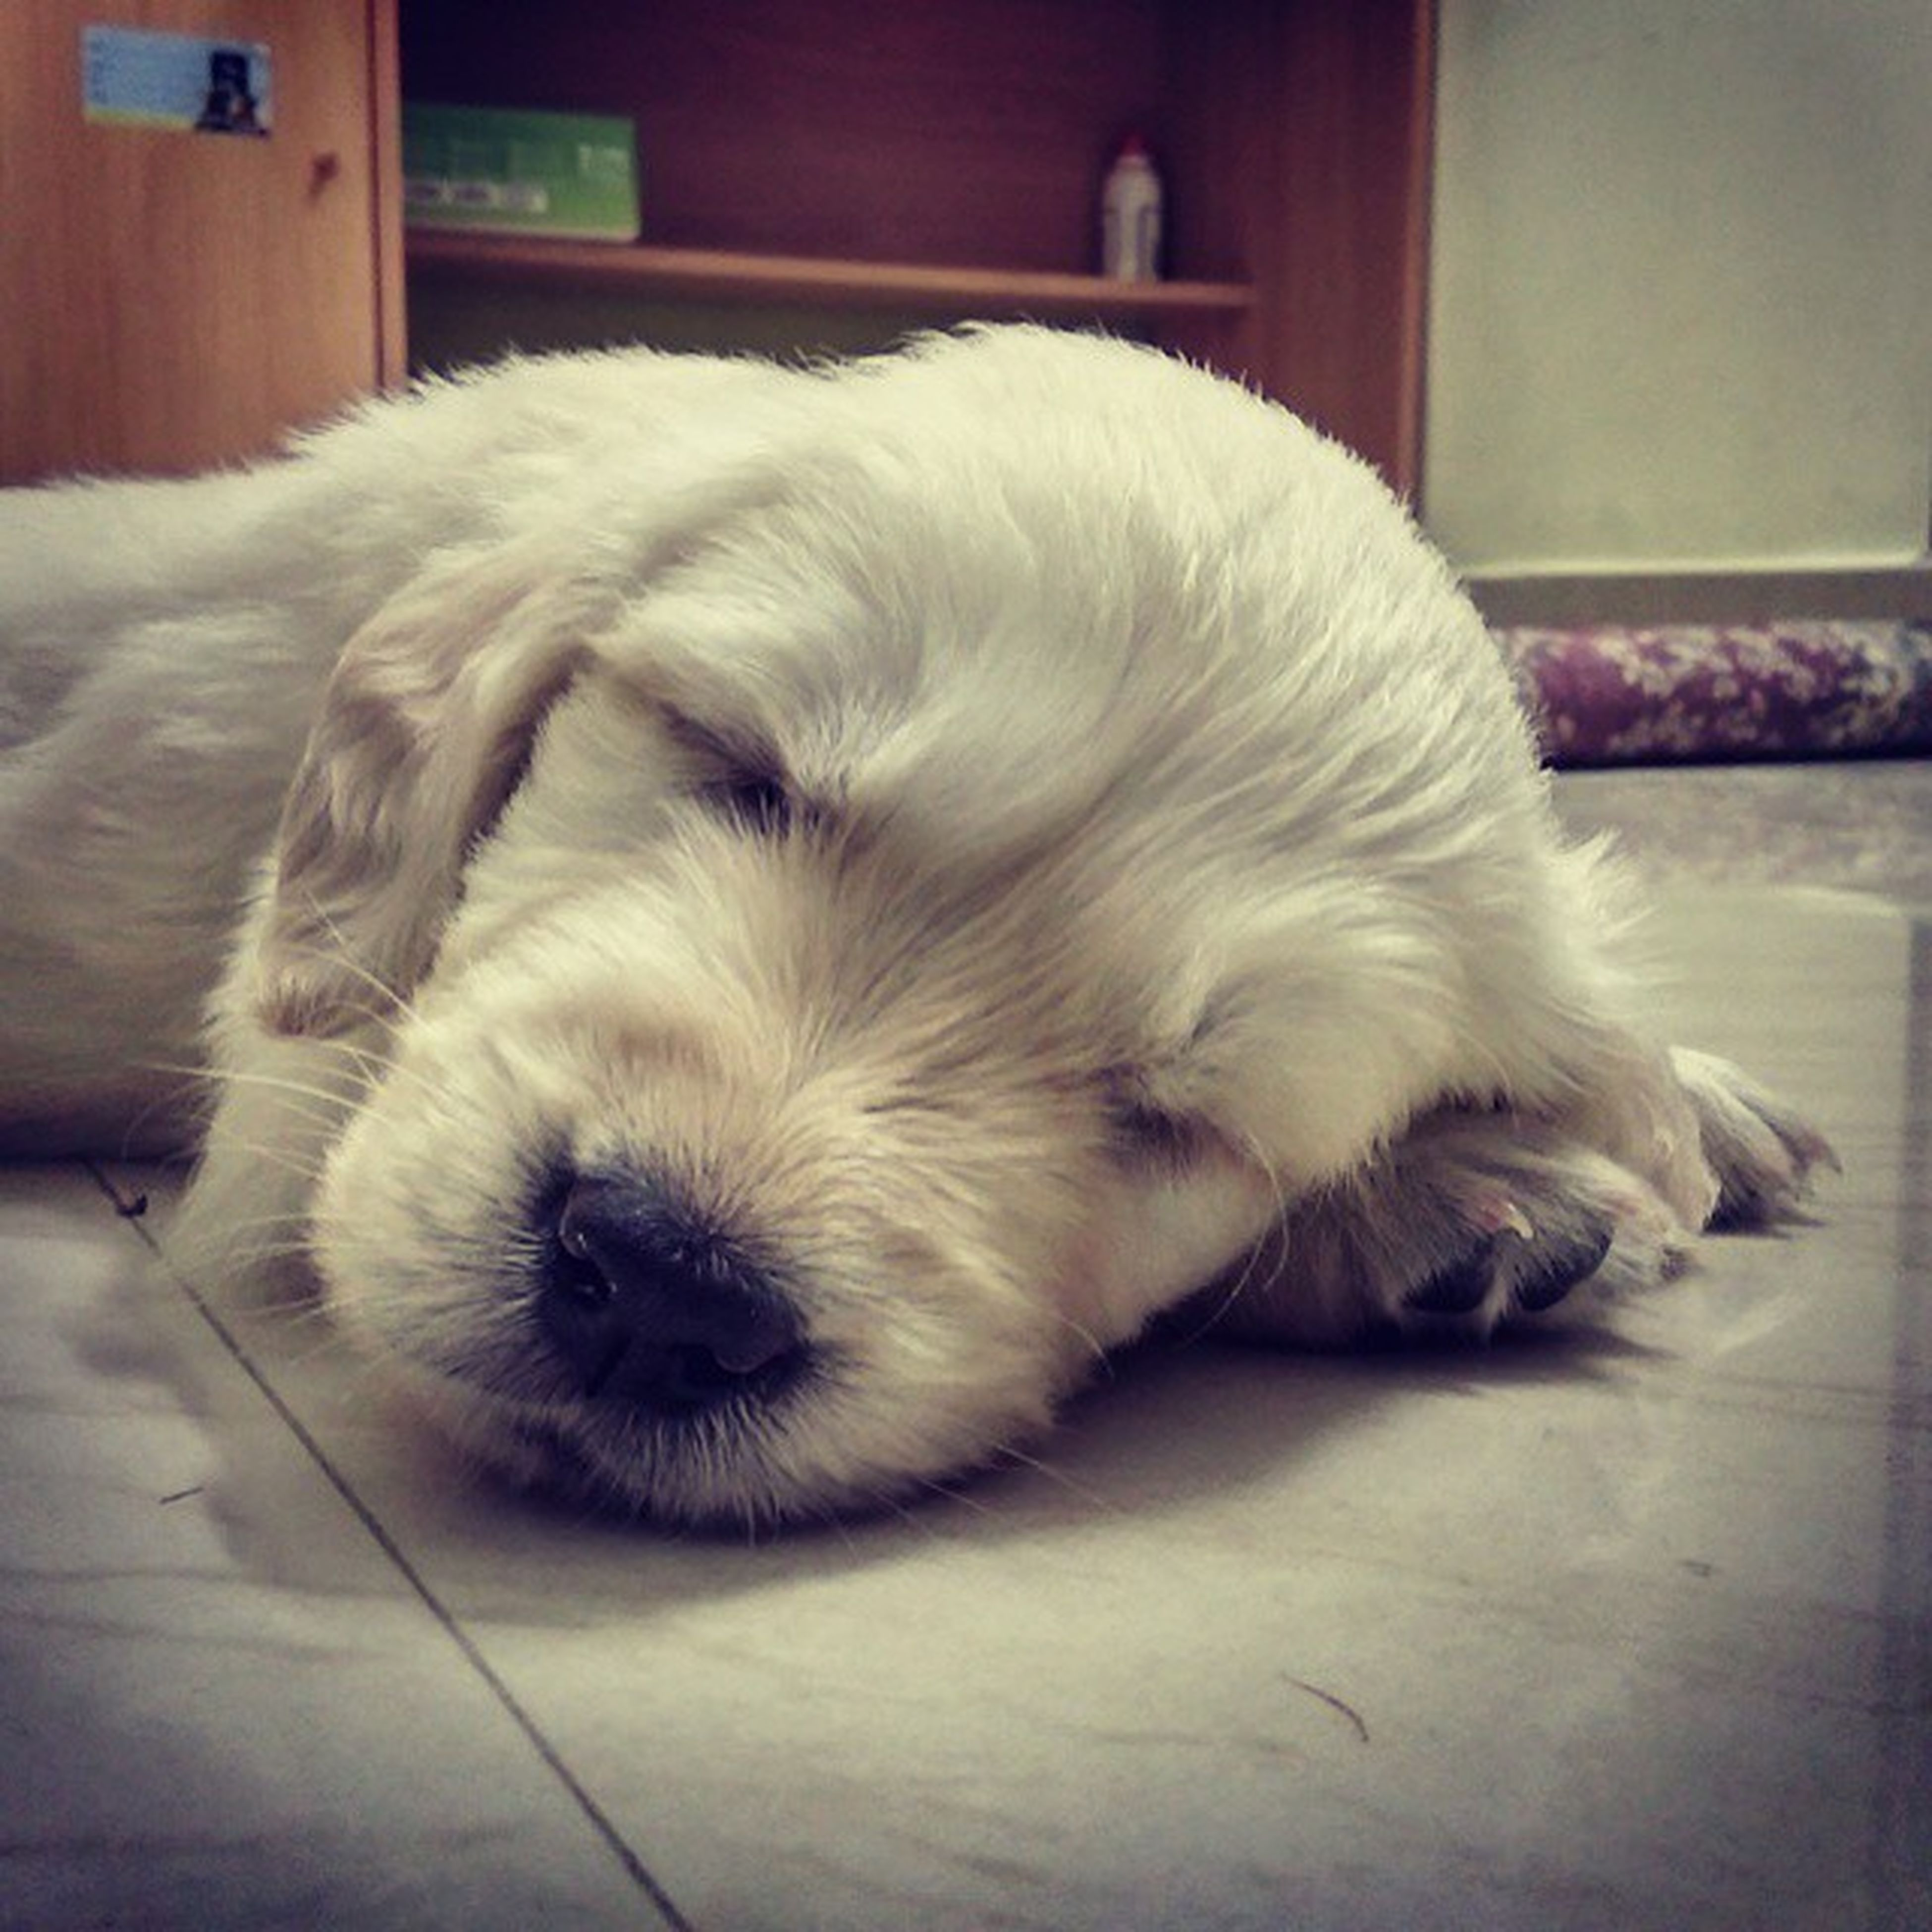 domestic animals, pets, animal themes, dog, indoors, one animal, mammal, relaxation, sleeping, lying down, resting, home interior, close-up, white color, flooring, animal head, eyes closed, no people, home, animal hair